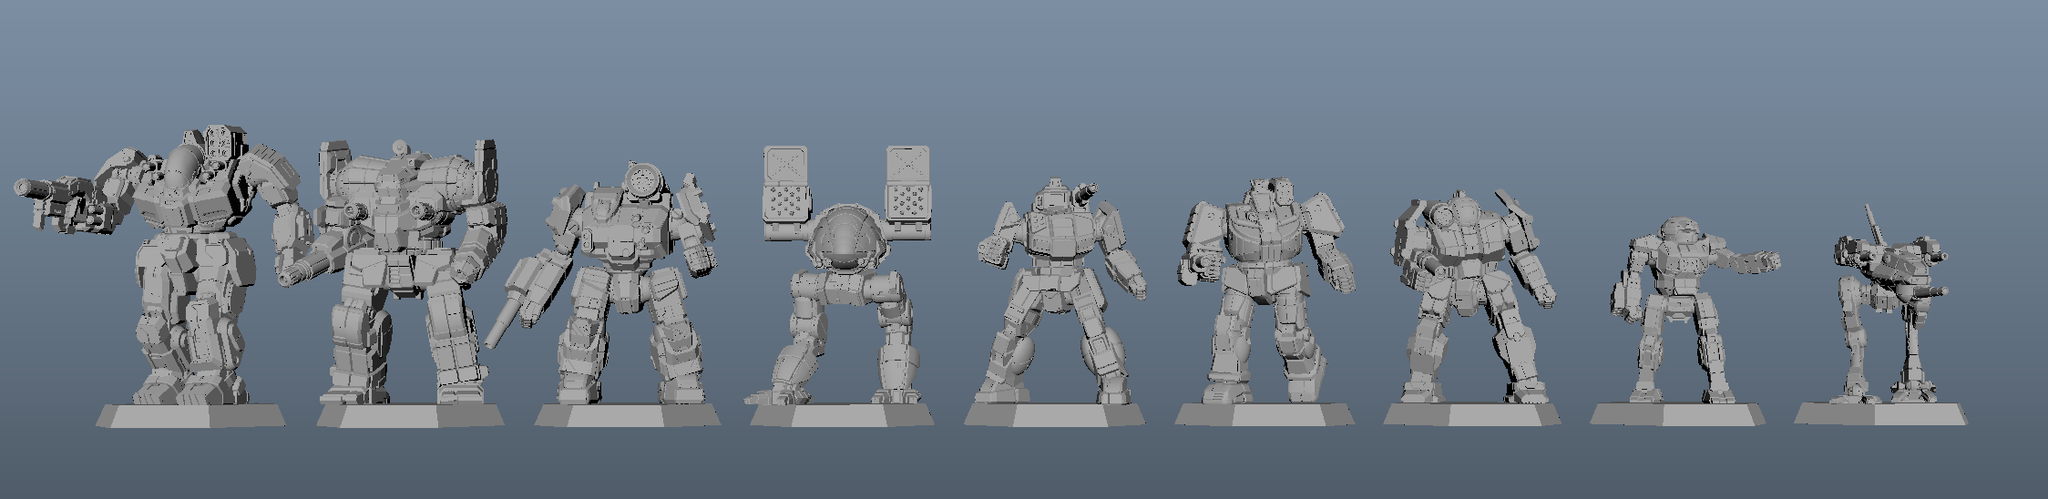 Nuevas cajas y miniaturas de Catalyst para 2018 - Página 5 2018_Box_Battletech-Line-ups-no-scale-stick_preview